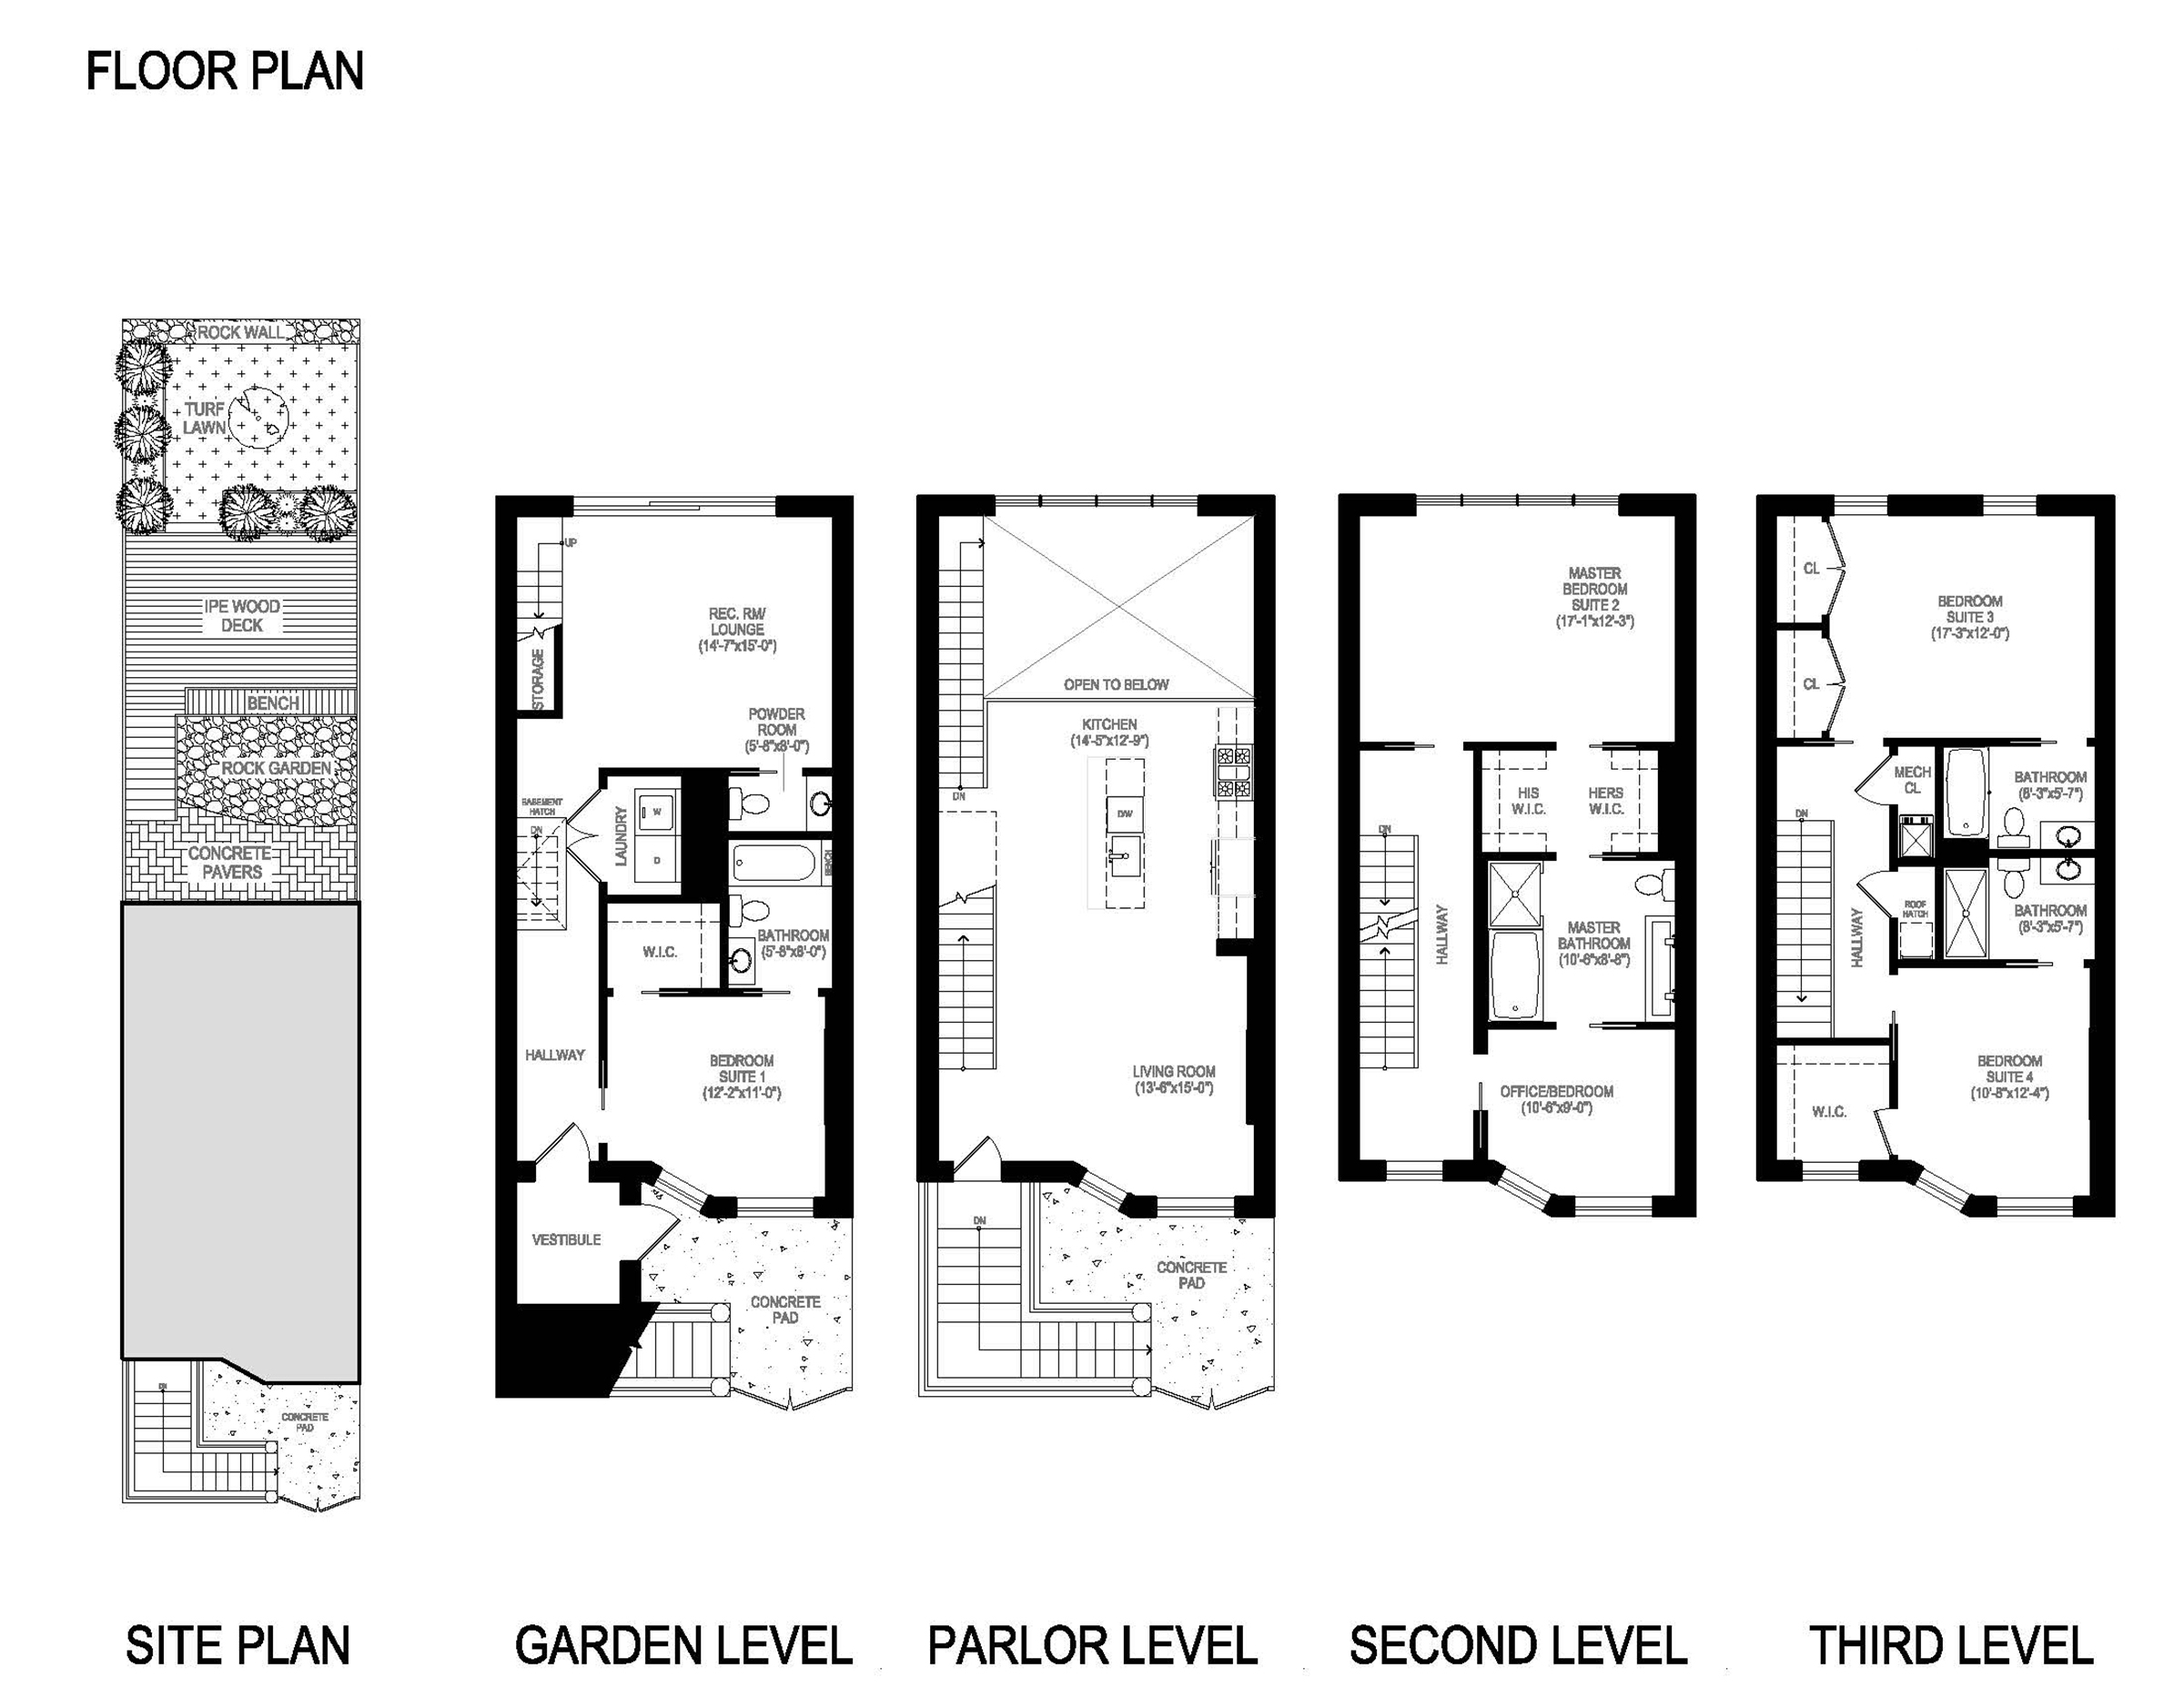 2015.08.28_Marketing Floor Plans_47 Bradhurst Ave_web.jpg